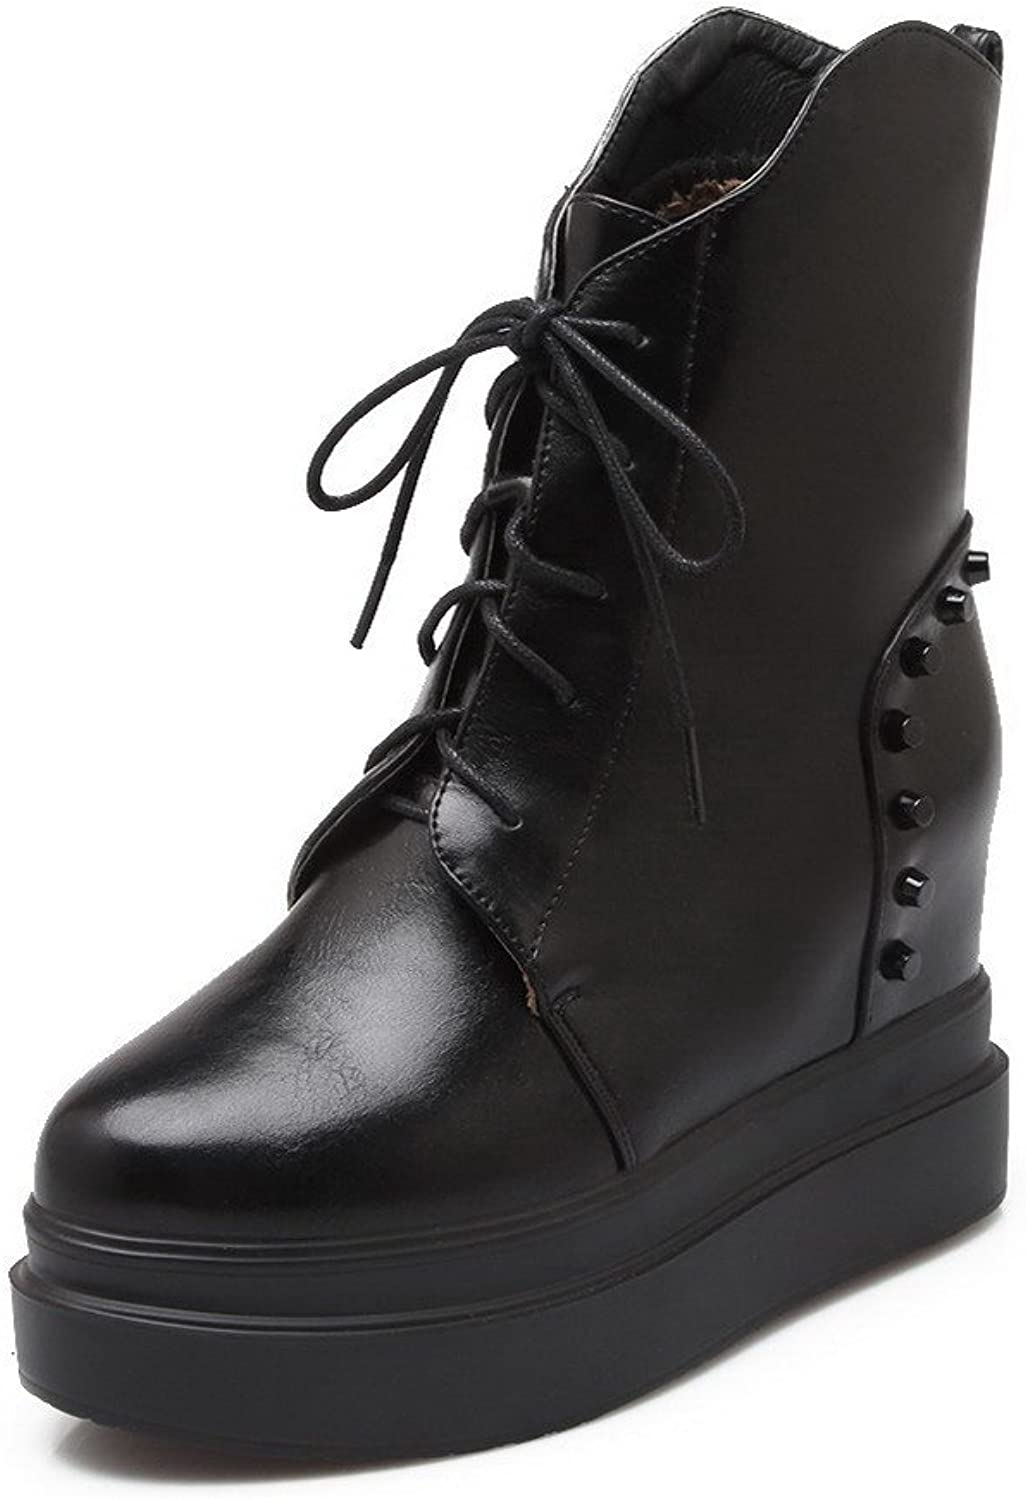 AmoonyFashion Women's Soft Material Closed Round Toe Solid Boots with Adornment